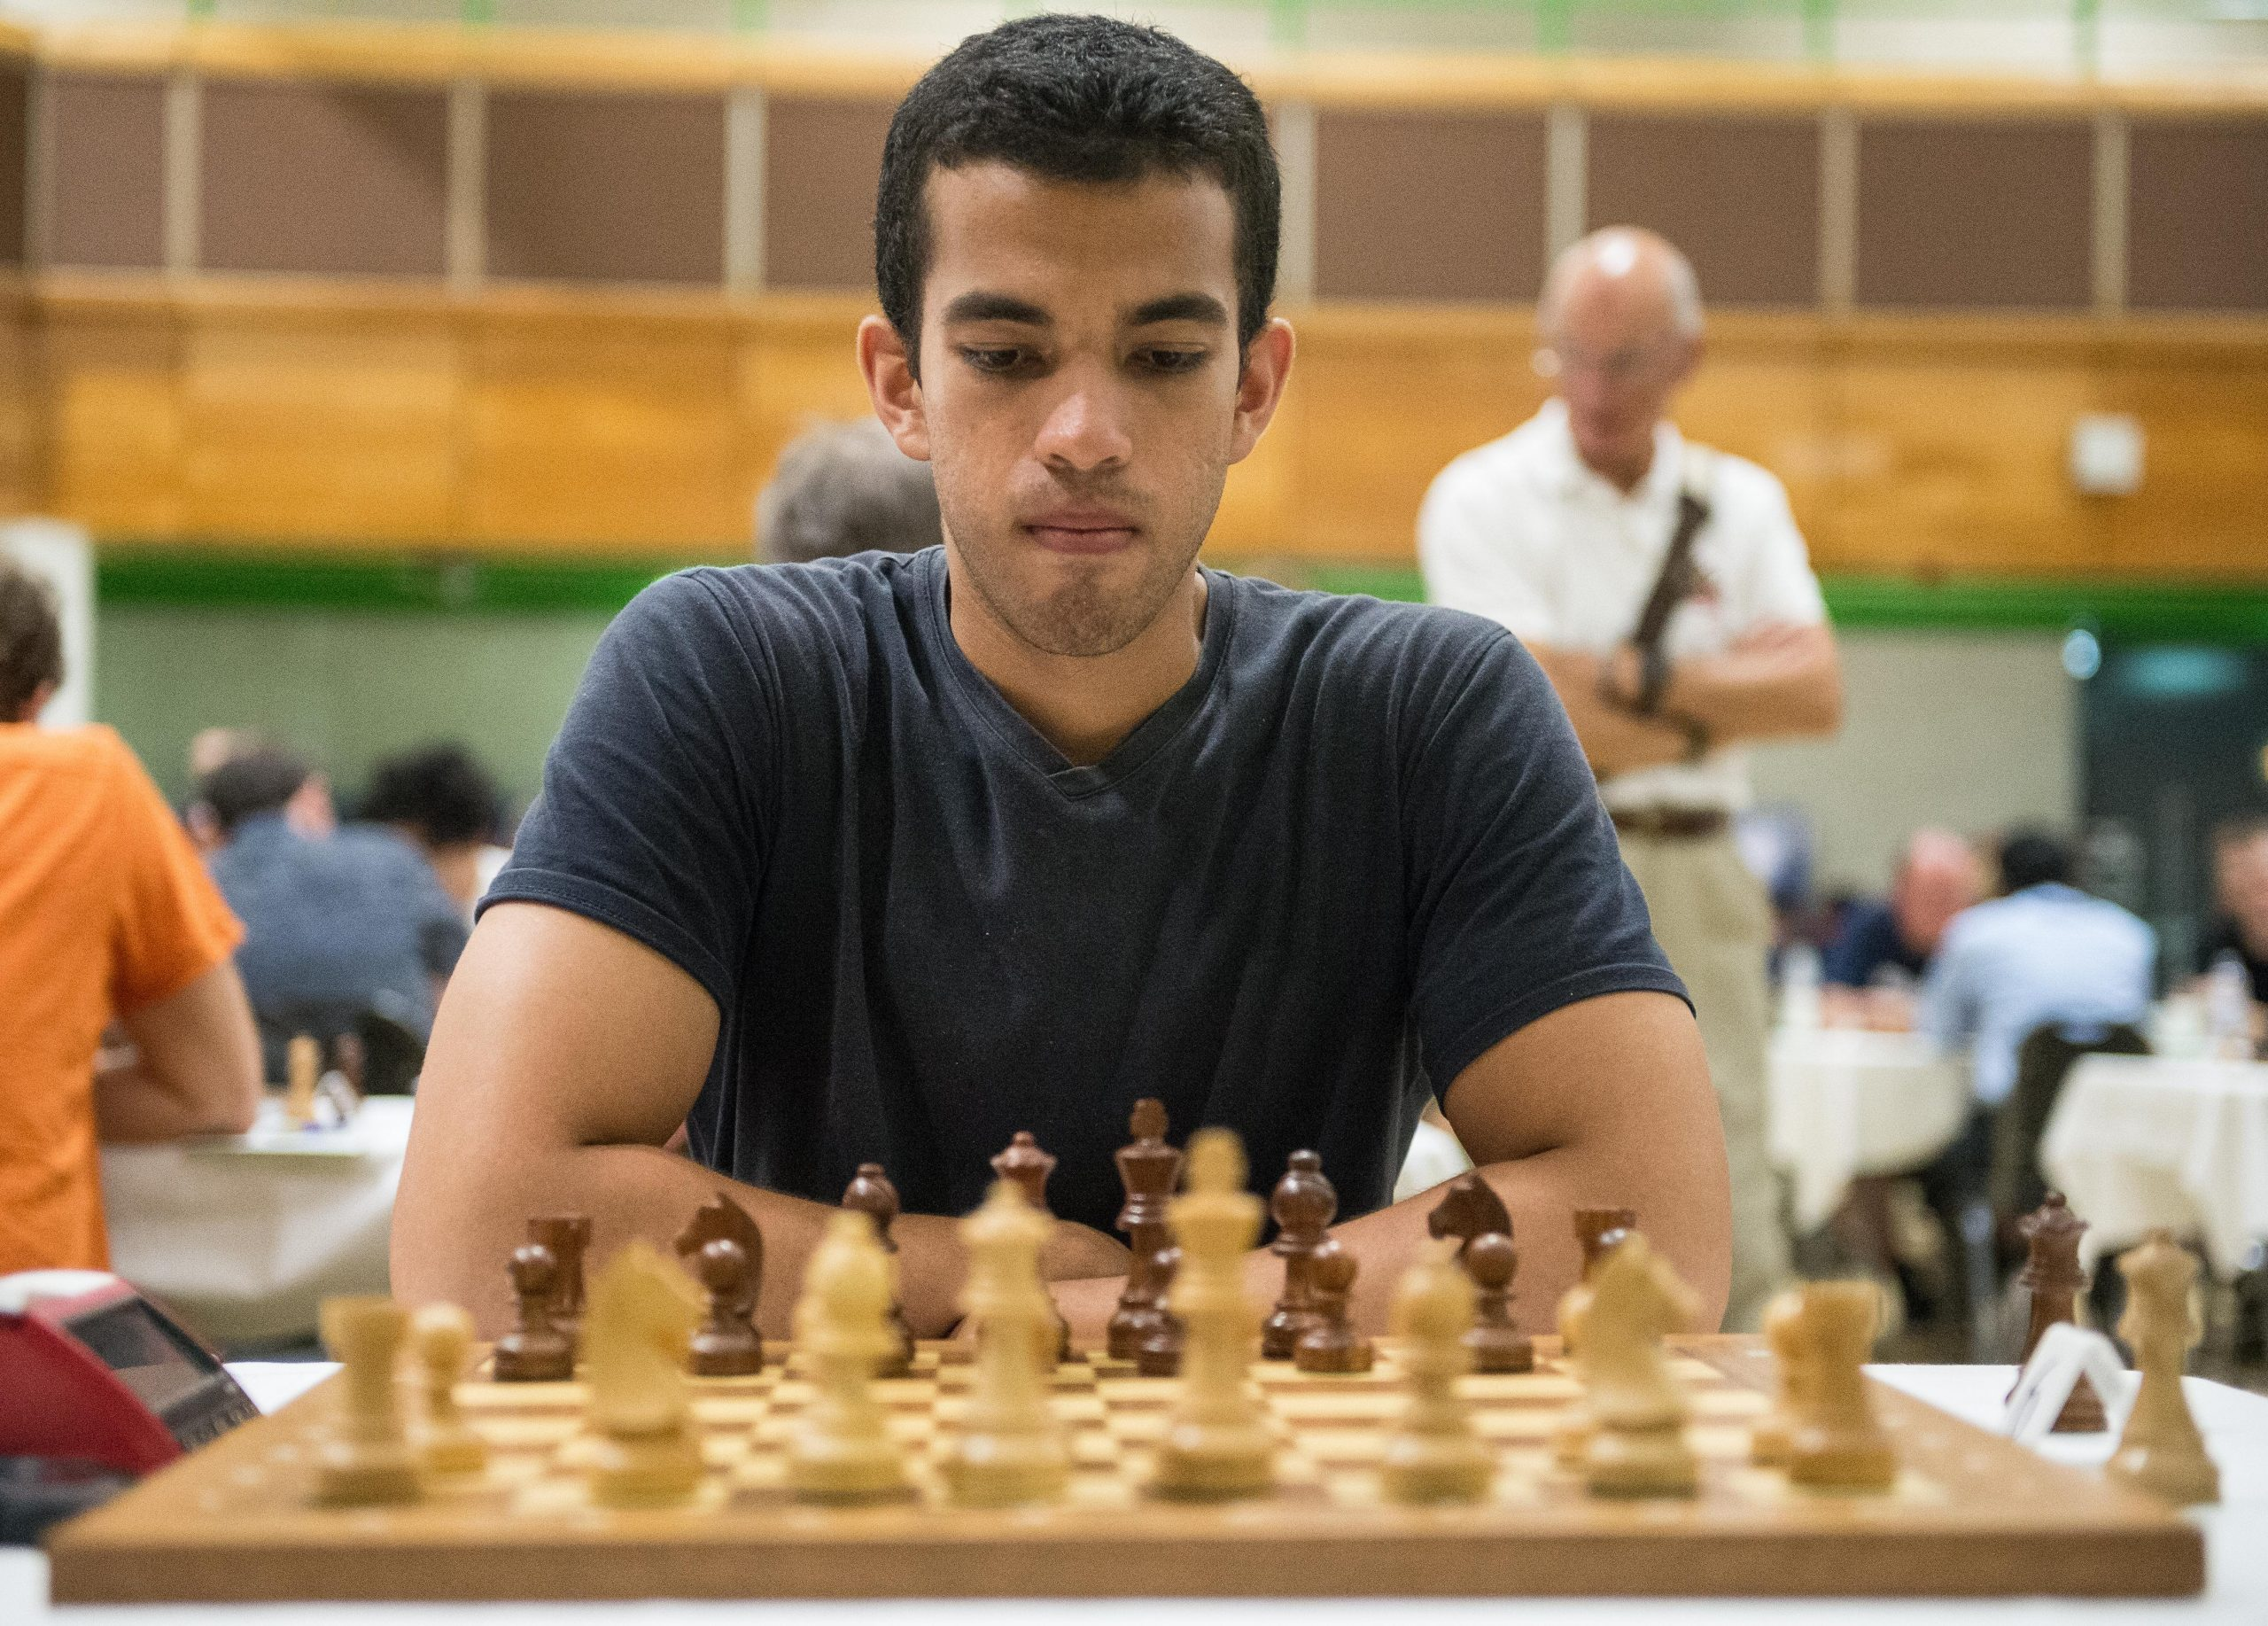 GM Daniel Fernandez, 2019 British Championships, Torquay. Courtesy of John Upham Photography